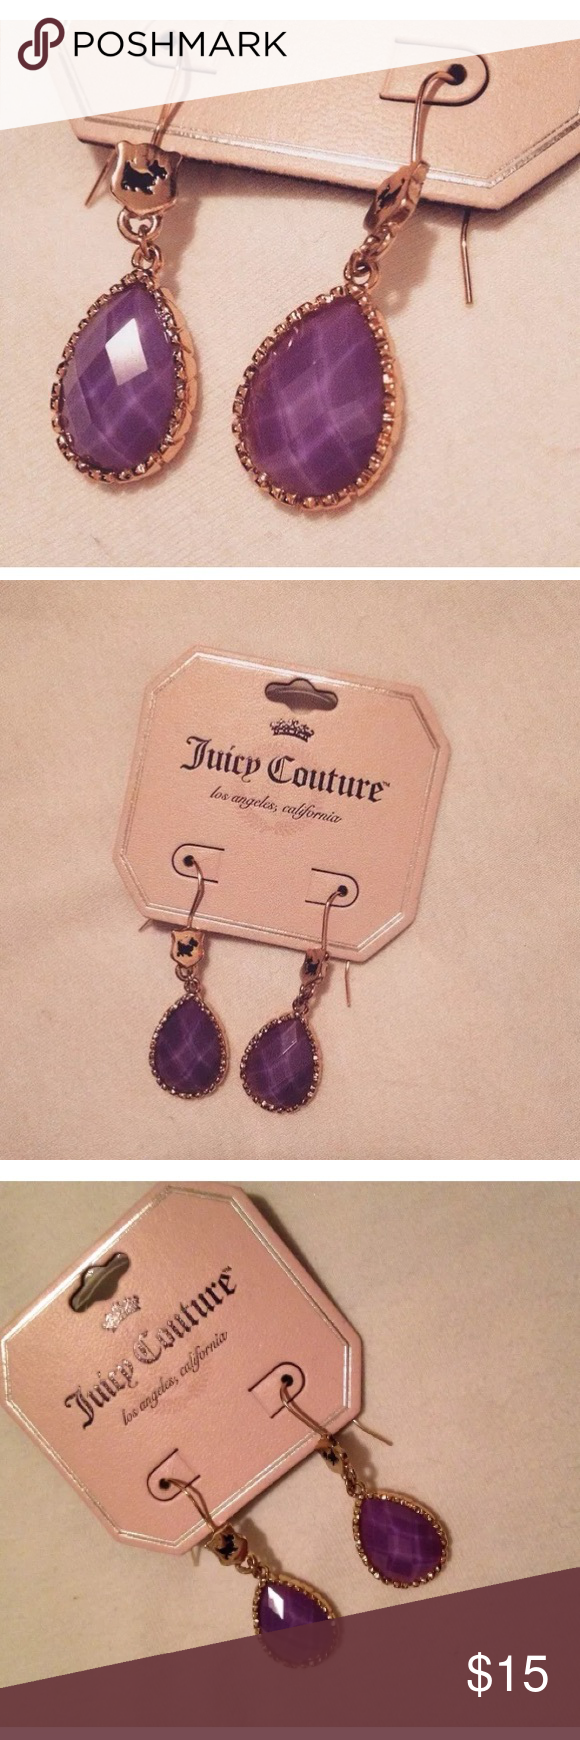 Juicy Couture Purple Teardrop Dangle Earrings Up for grabs is a brand new pair of Juicy Couture Purple and Gold Rhinestone Dangle earrings with tags. Please message me if you have any questions. Thank you! Juicy Couture Jewelry Earrings